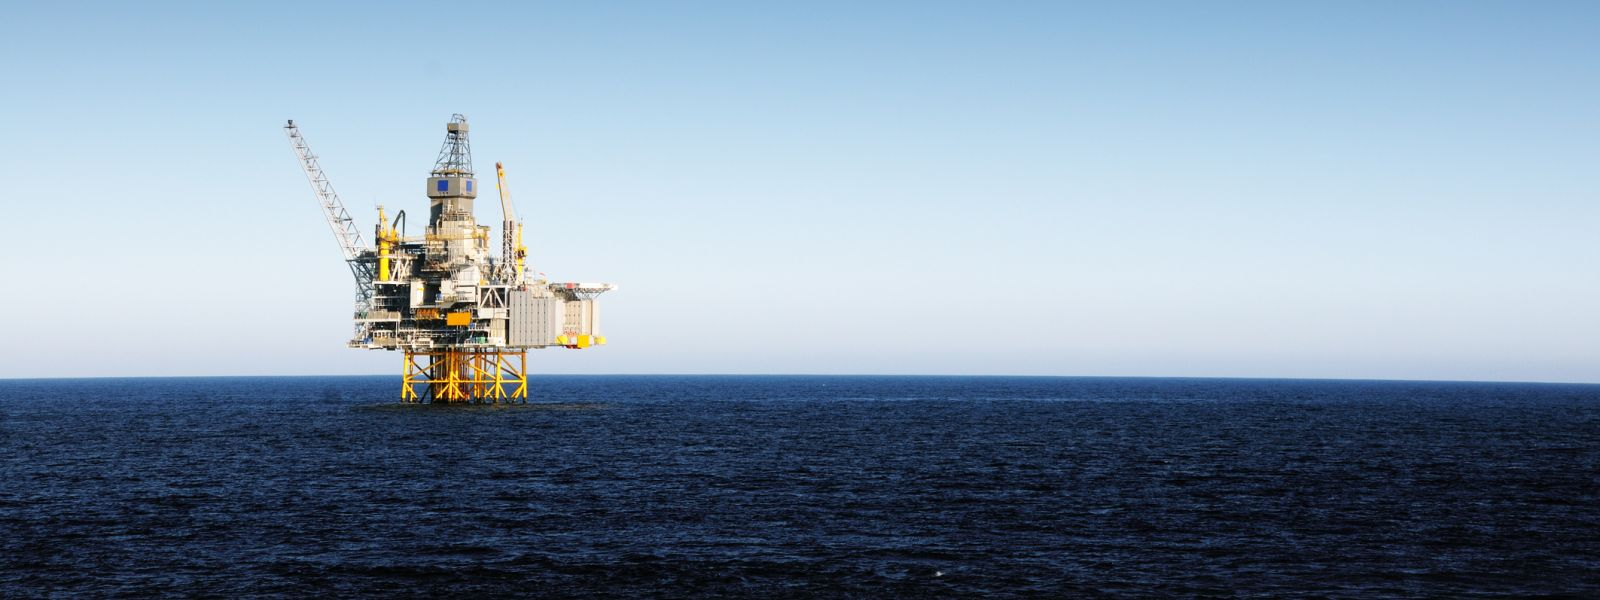 Oil rig in the sea